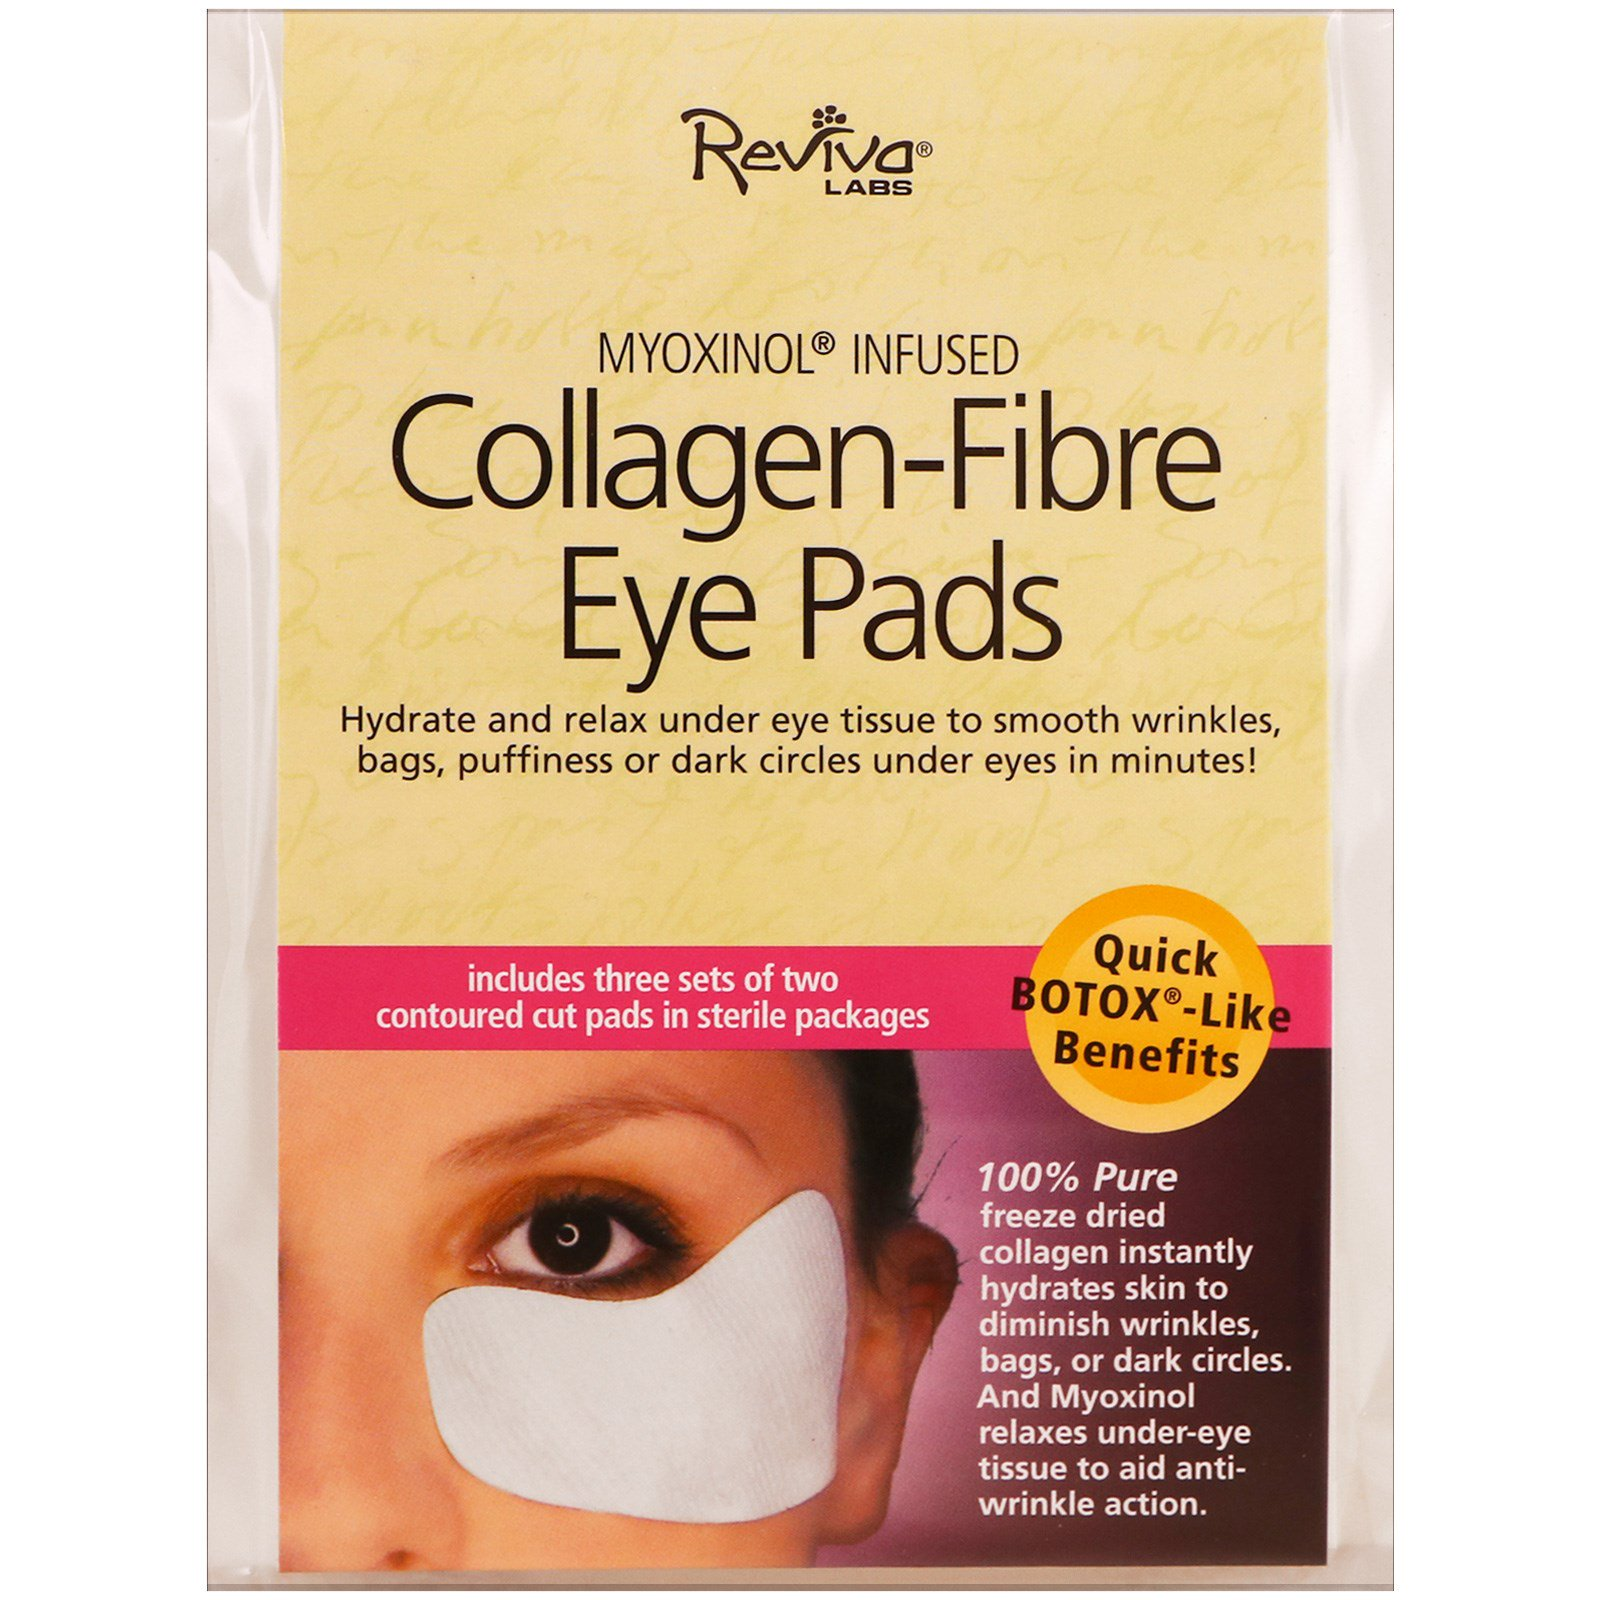 Reviva Labs, Collagen-Fibre Eye Pads, 3 Sets of Two Contoured Pads(pack of 1)